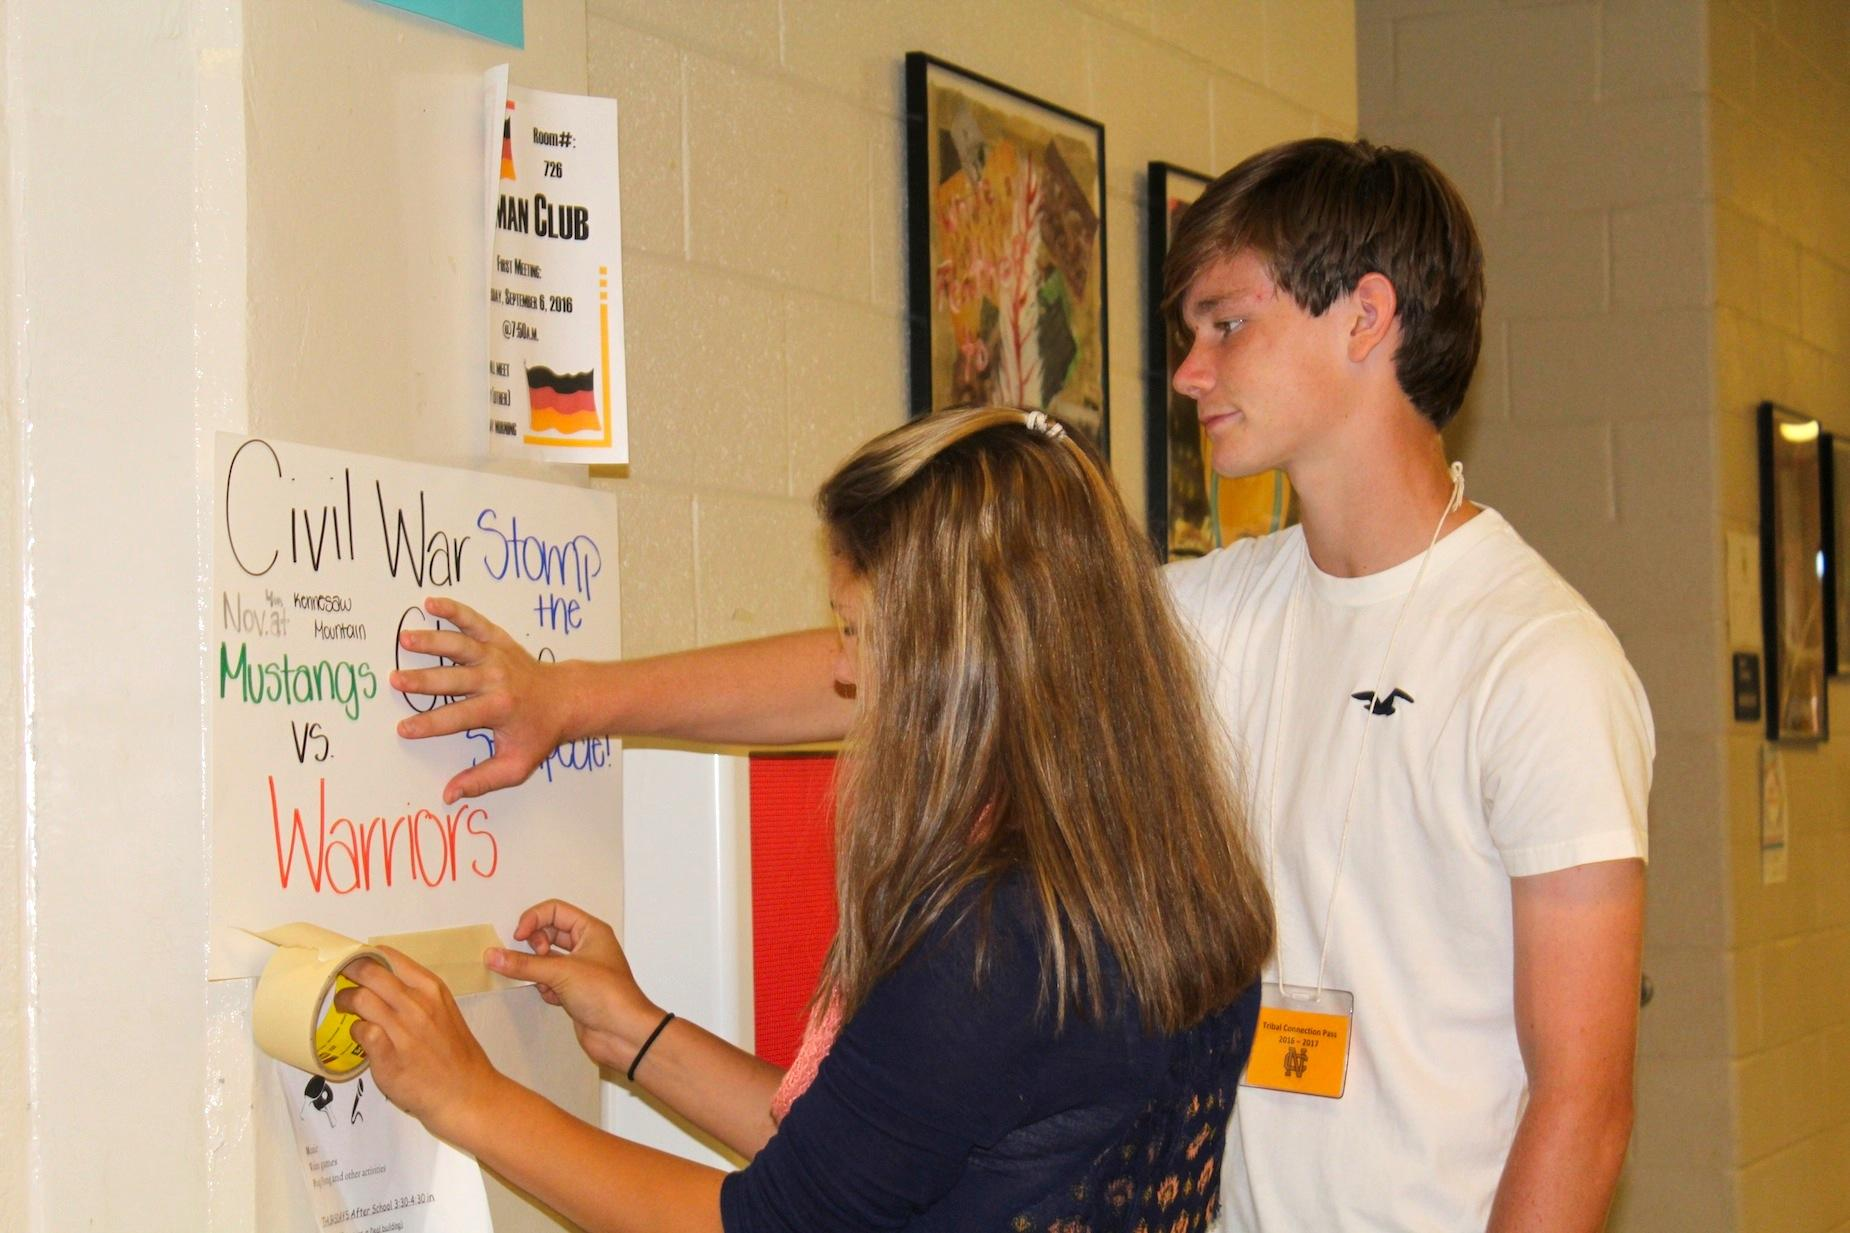 Freshmen Malina Cagle and Brian Morgan are hanging up posters promoting today's Civil War game against the Kennesaw Mountain Mustangs. The Warriors plan to continue their dominance against their in-town rival as they look for their eighth consecutive win. The game will be played at Kennesaw Mountain, so make sure to go out and support the Warriors!